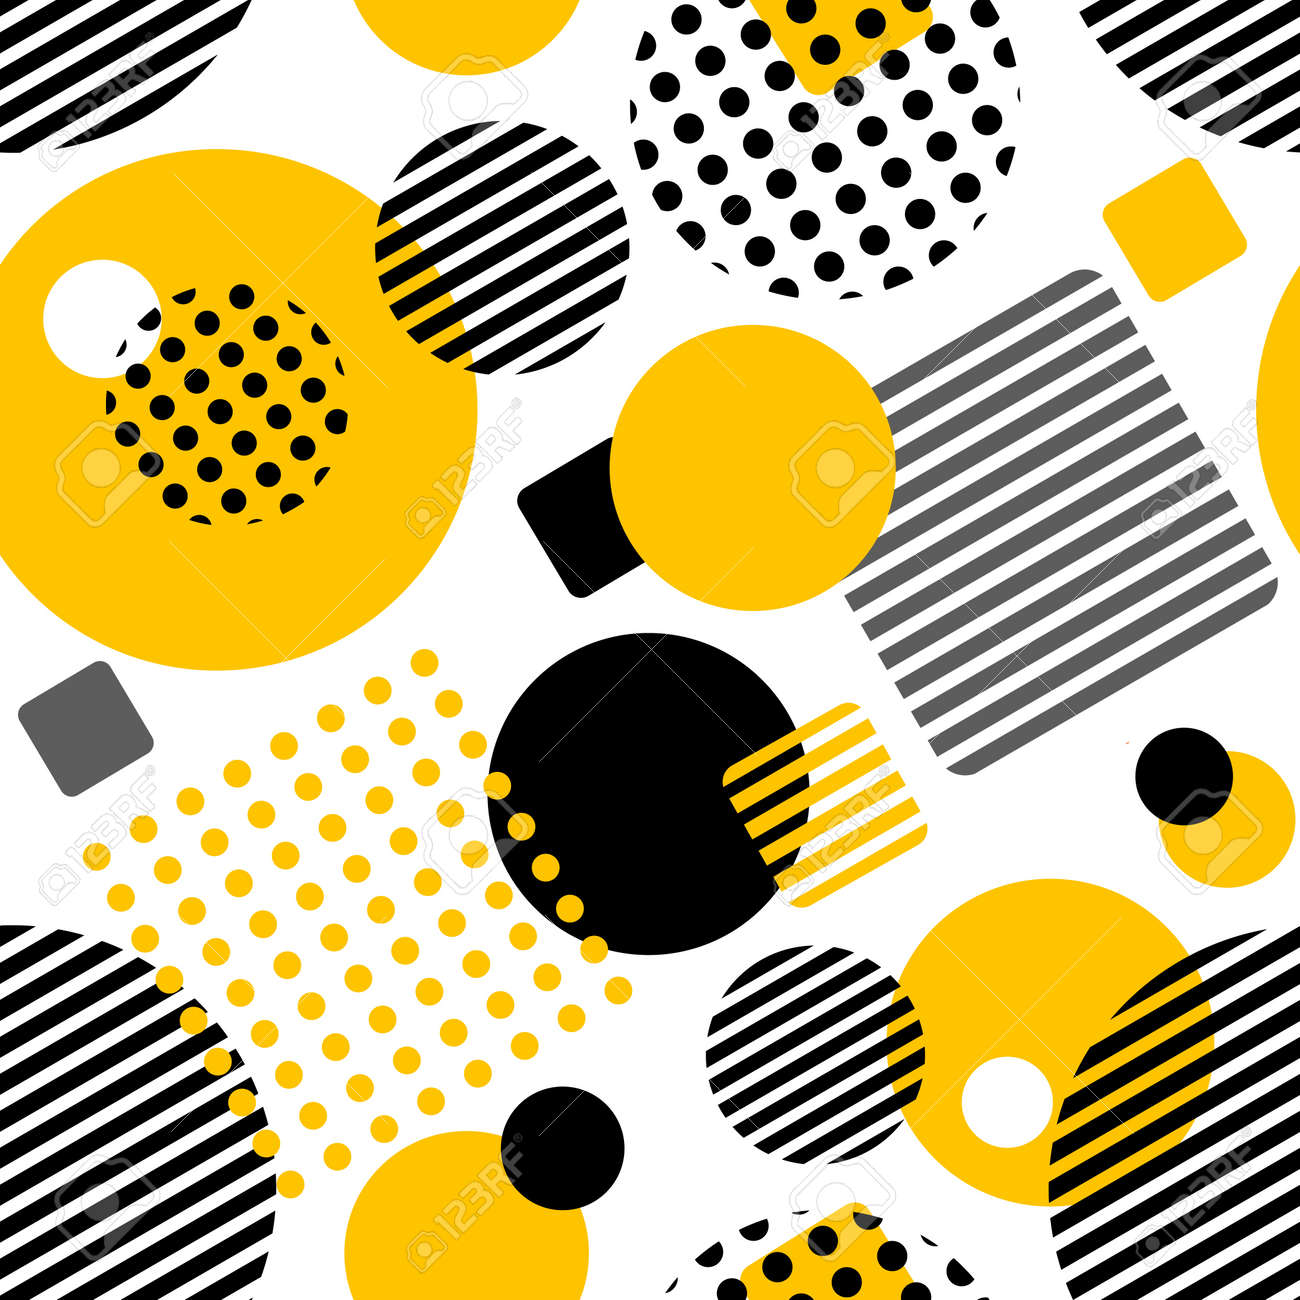 Geometric seamless pattern with circles, squares, stripes and dots. Pattern for fashion and wallpaper. Vector illustration. - 92711972